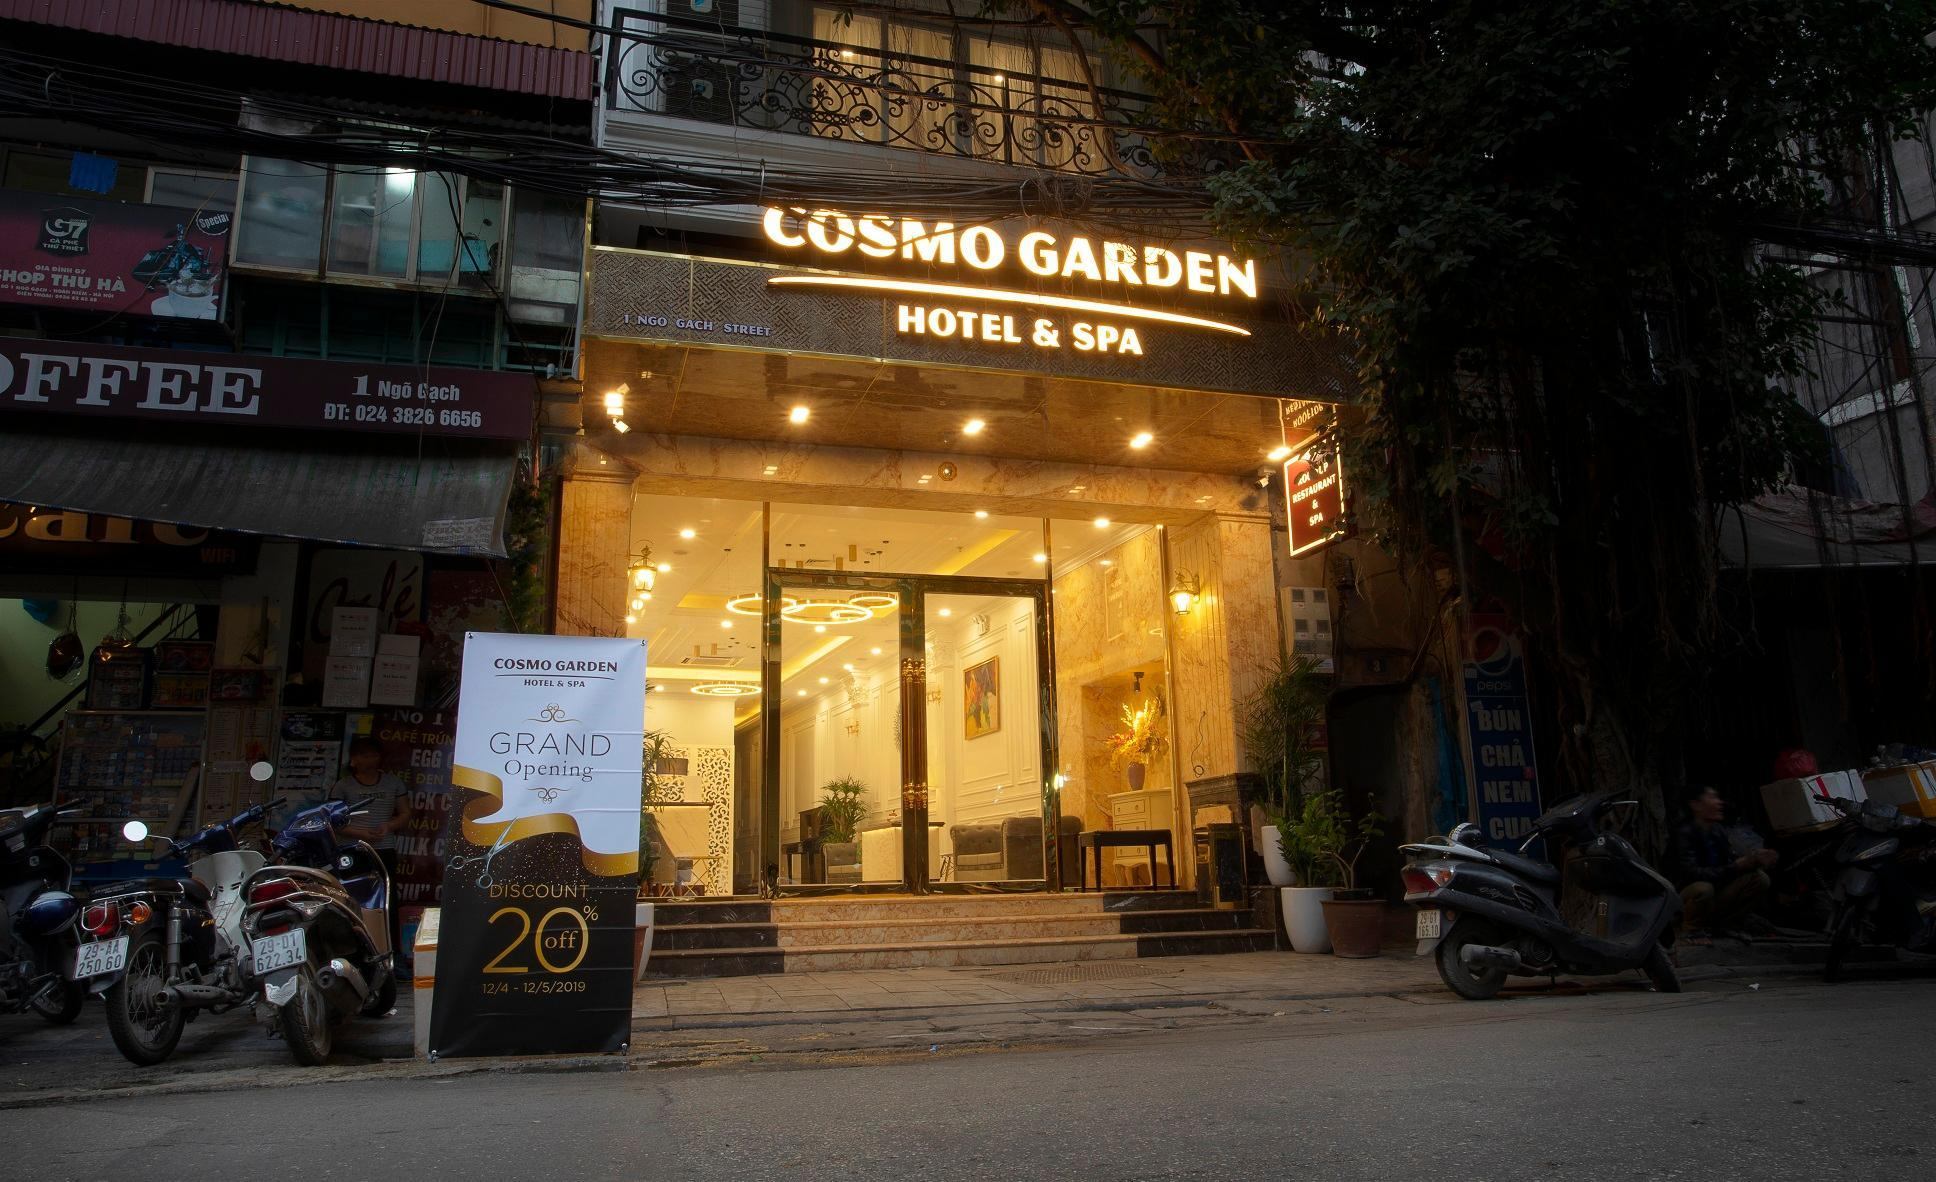 Cosmo Garden Hotel And Spa